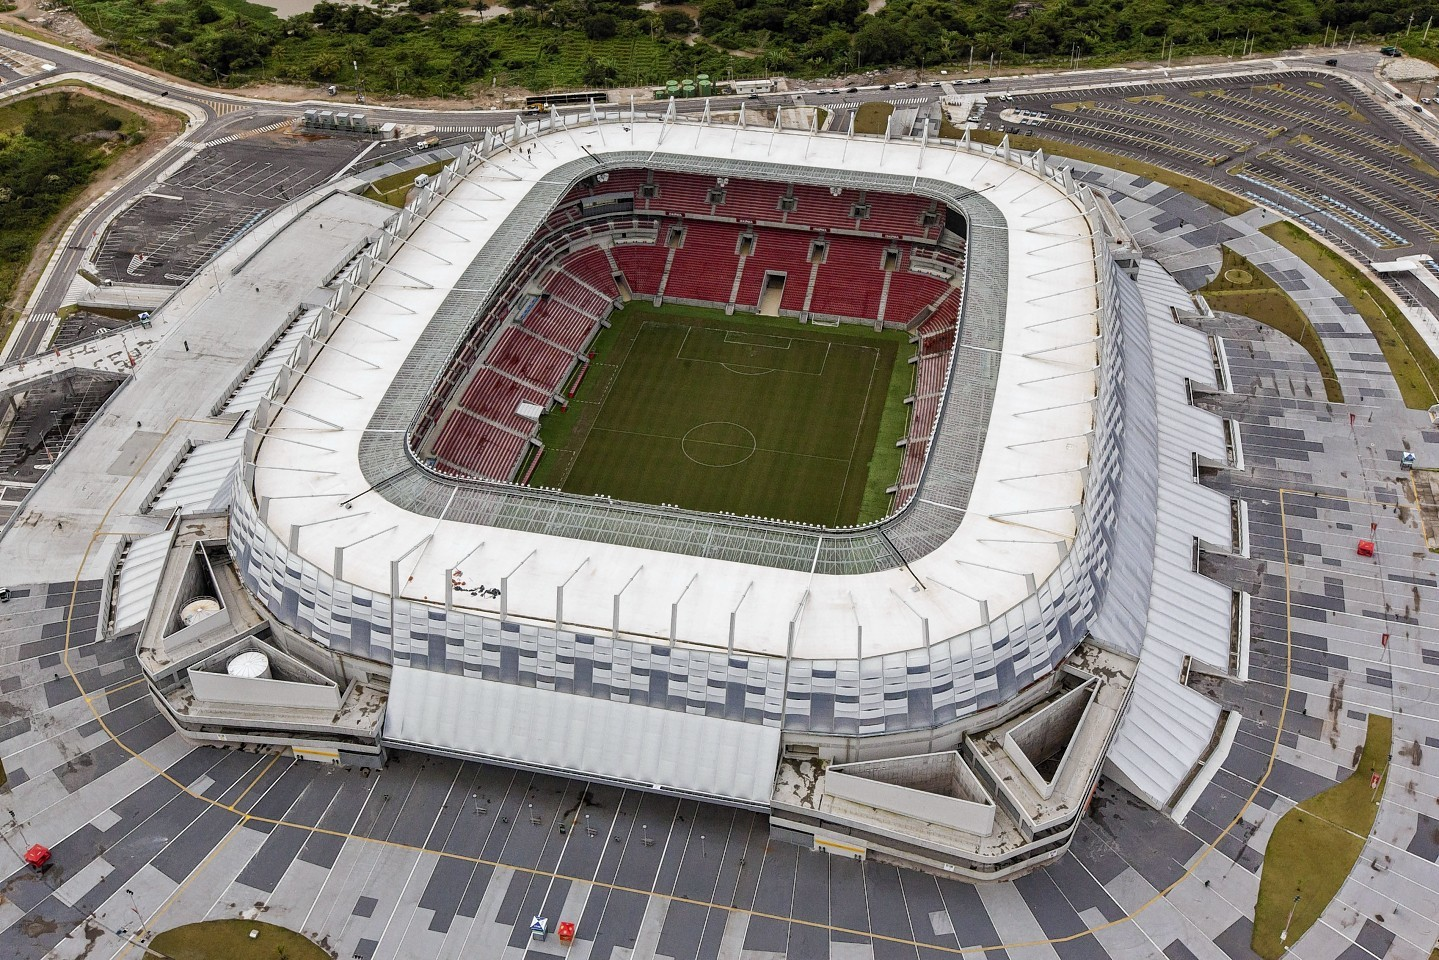 The Wold Cup host stadium in Recife, Brazil